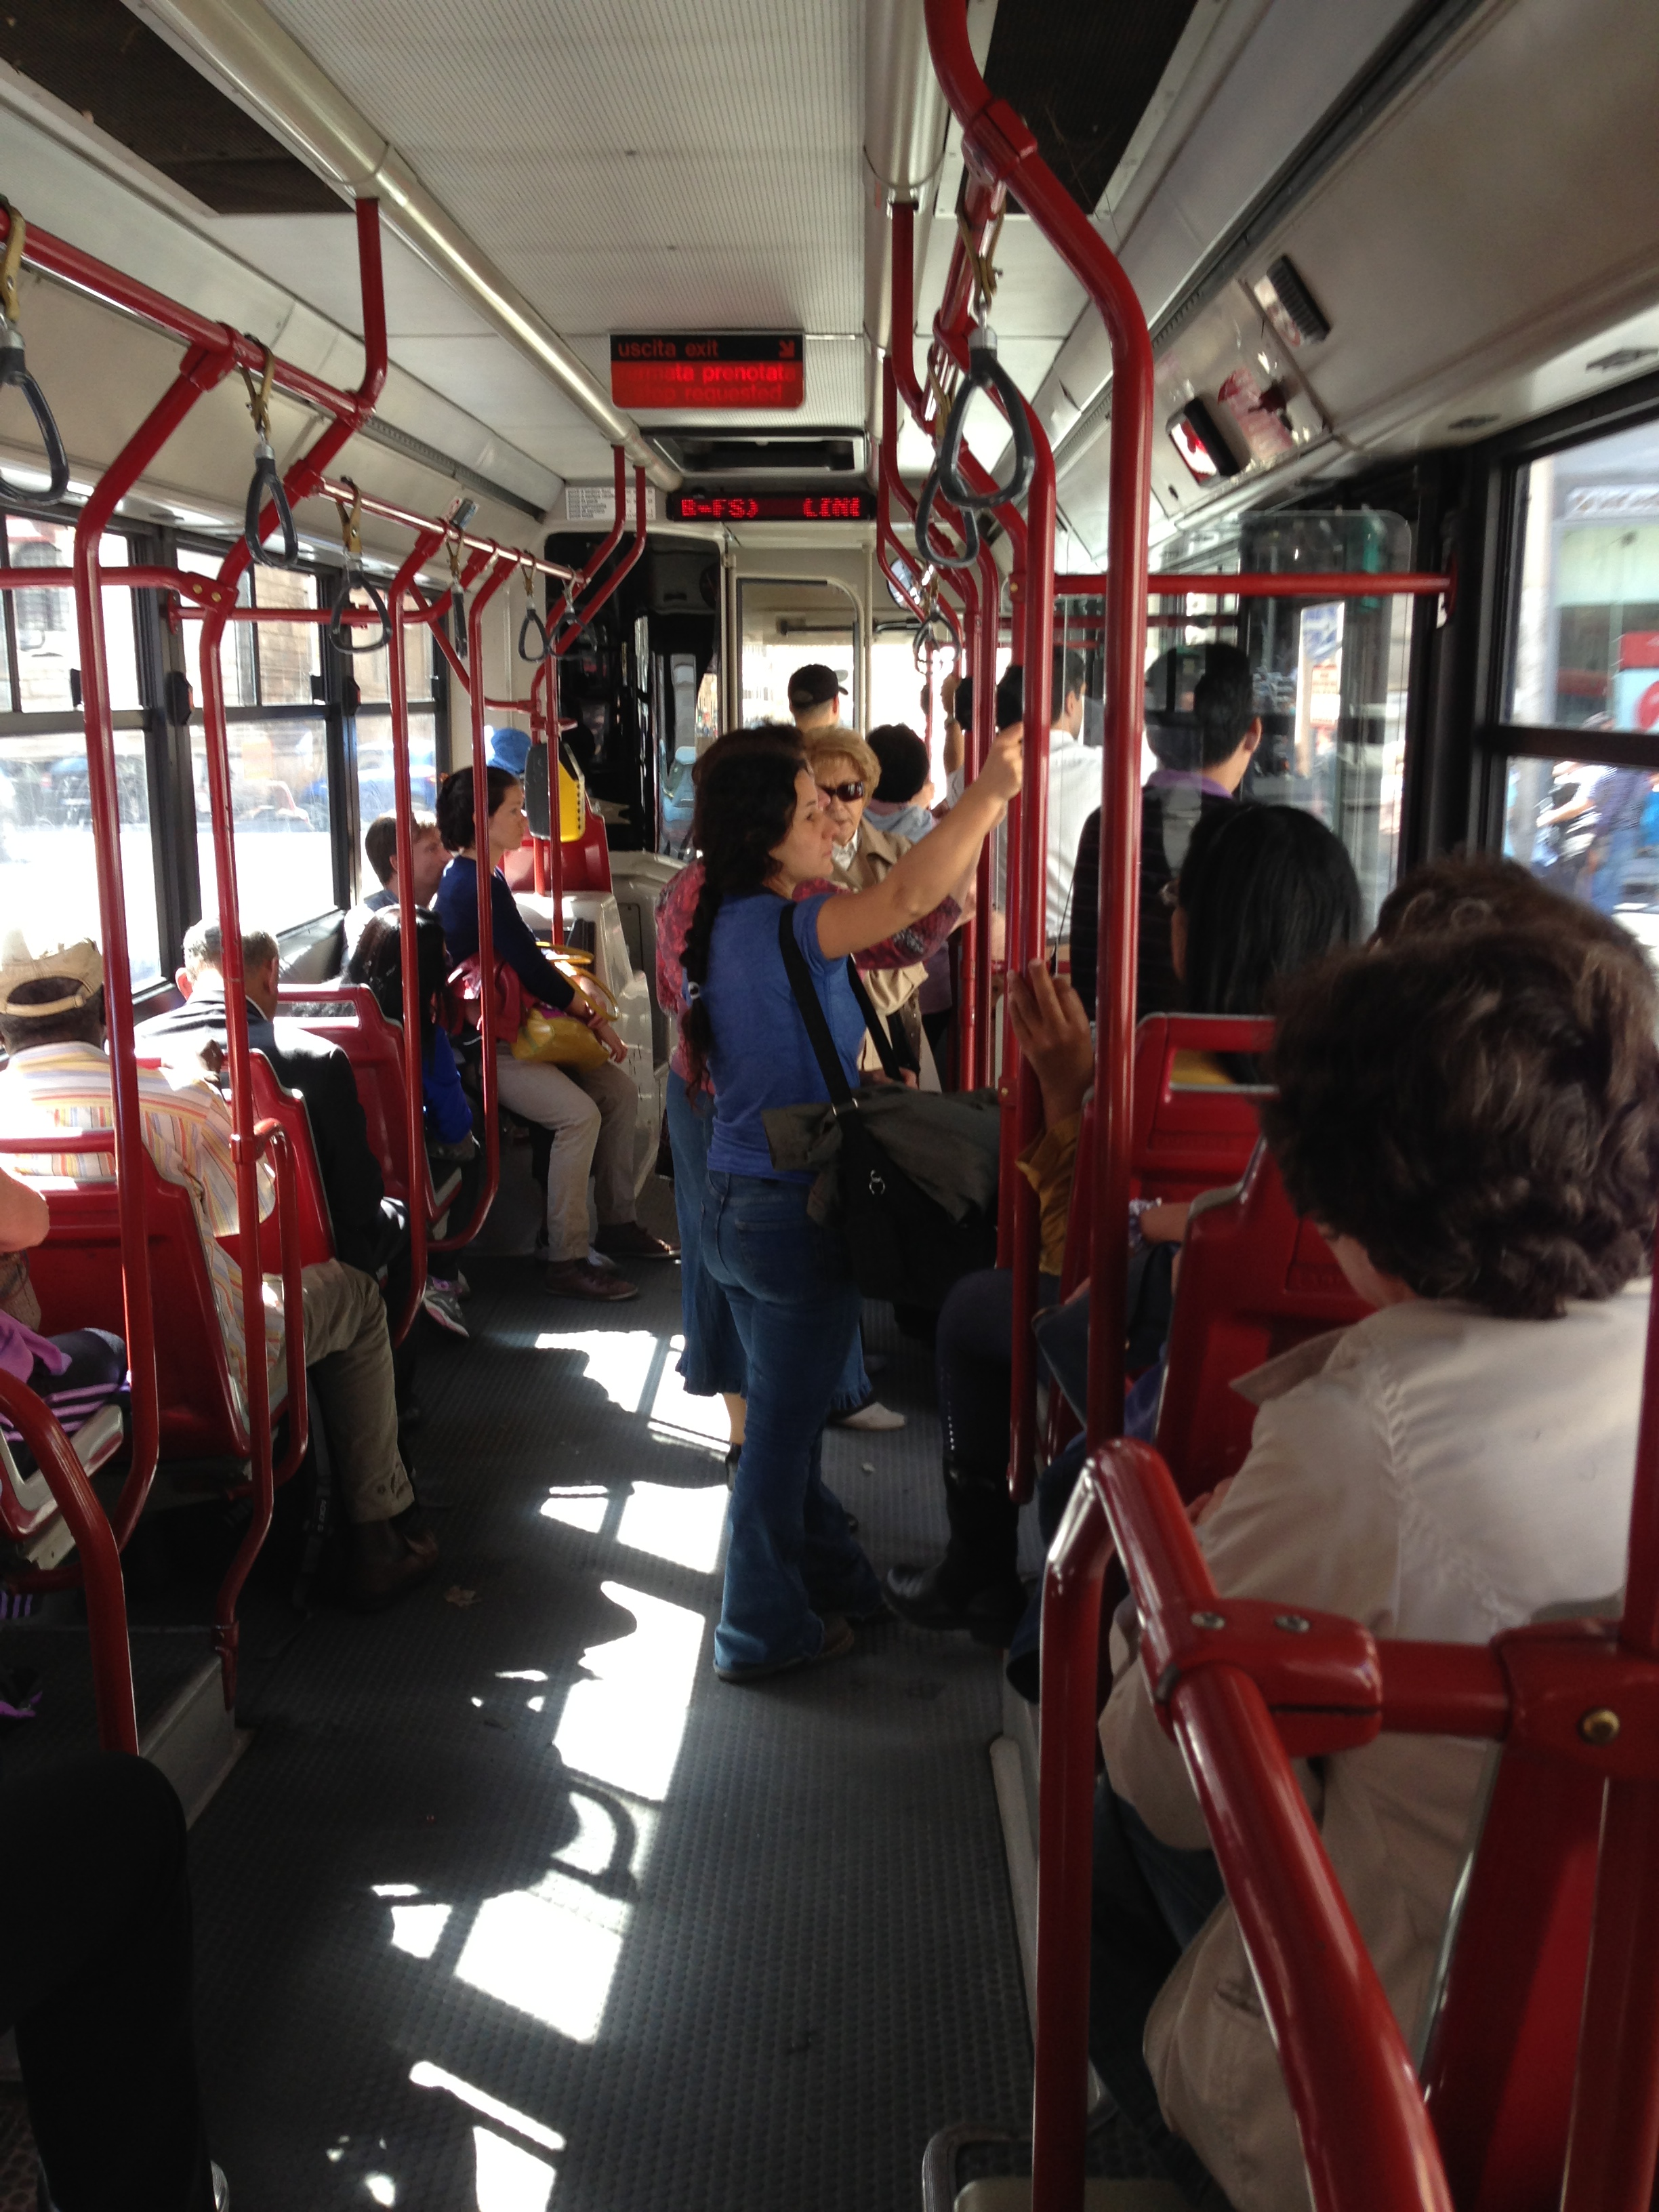 rome on the 40 bus route � how do i travel